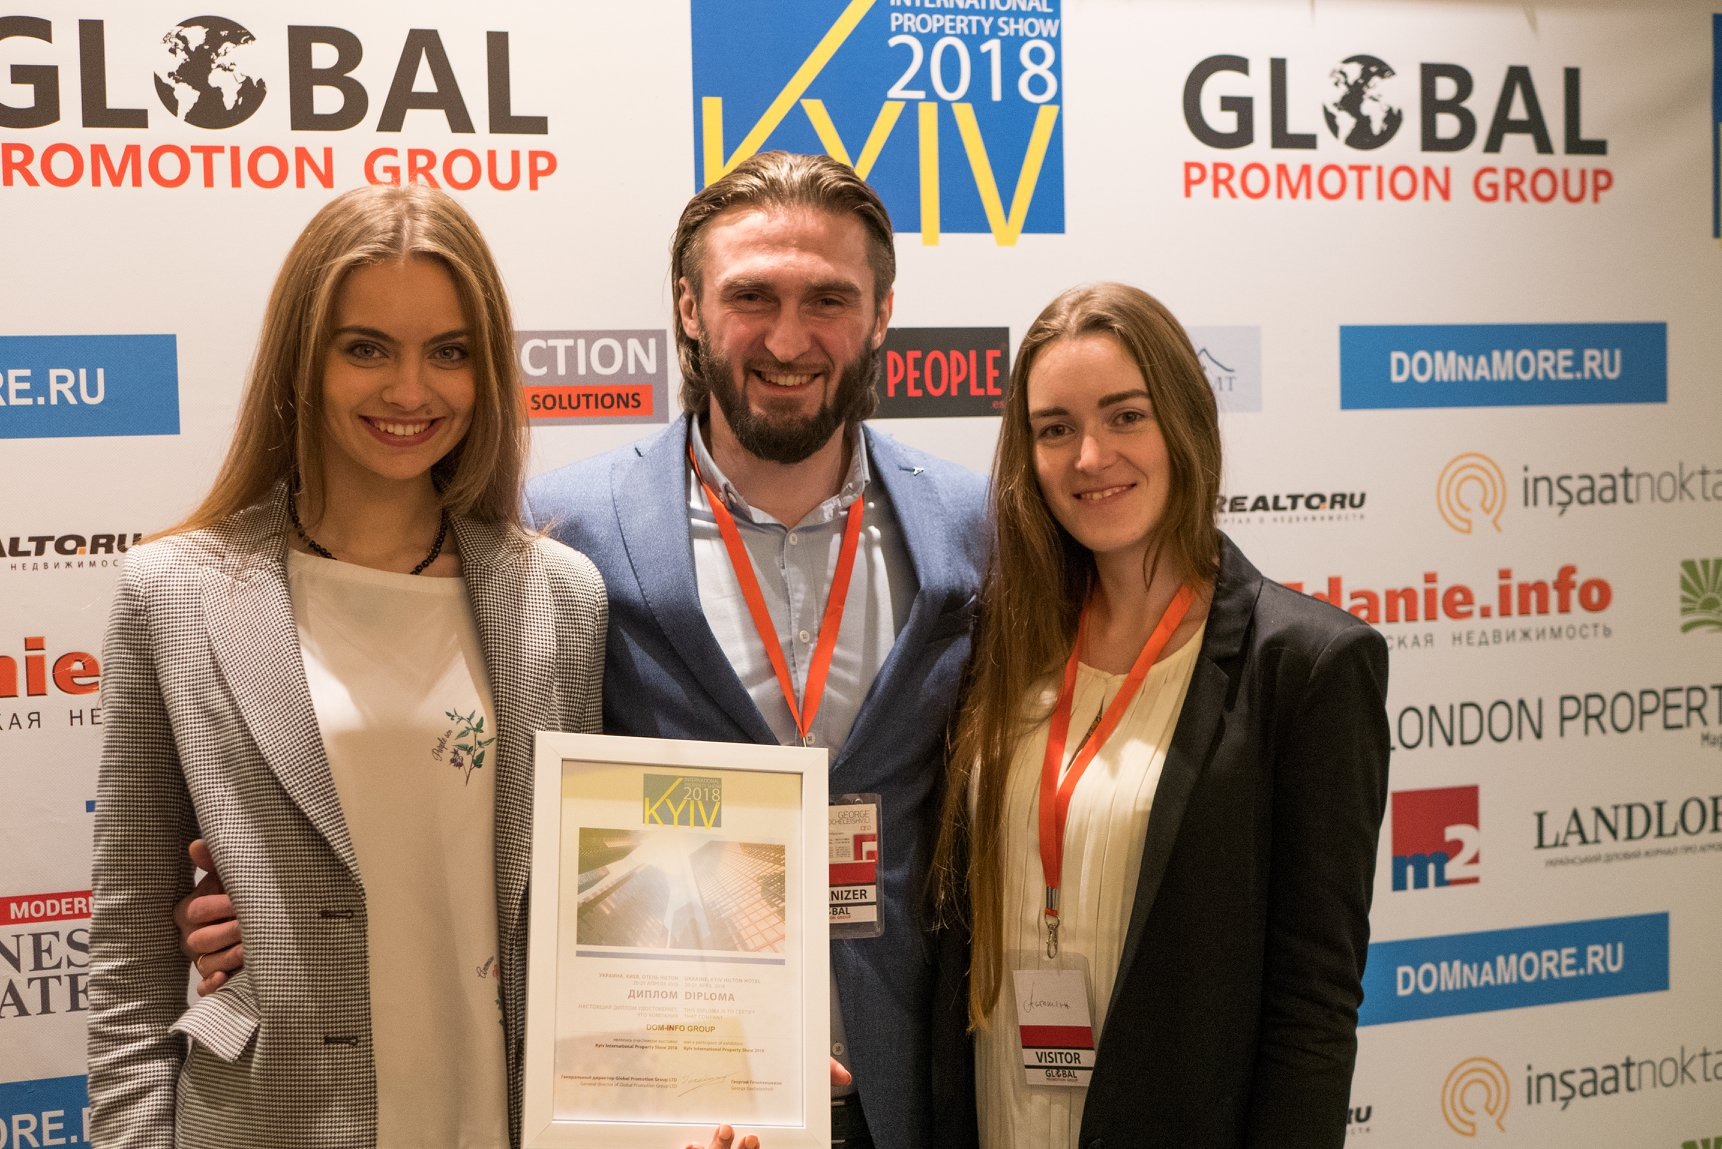 The private exhibition of foreign real estate, migration and investment will be held - Kyiv International Property Show 2018